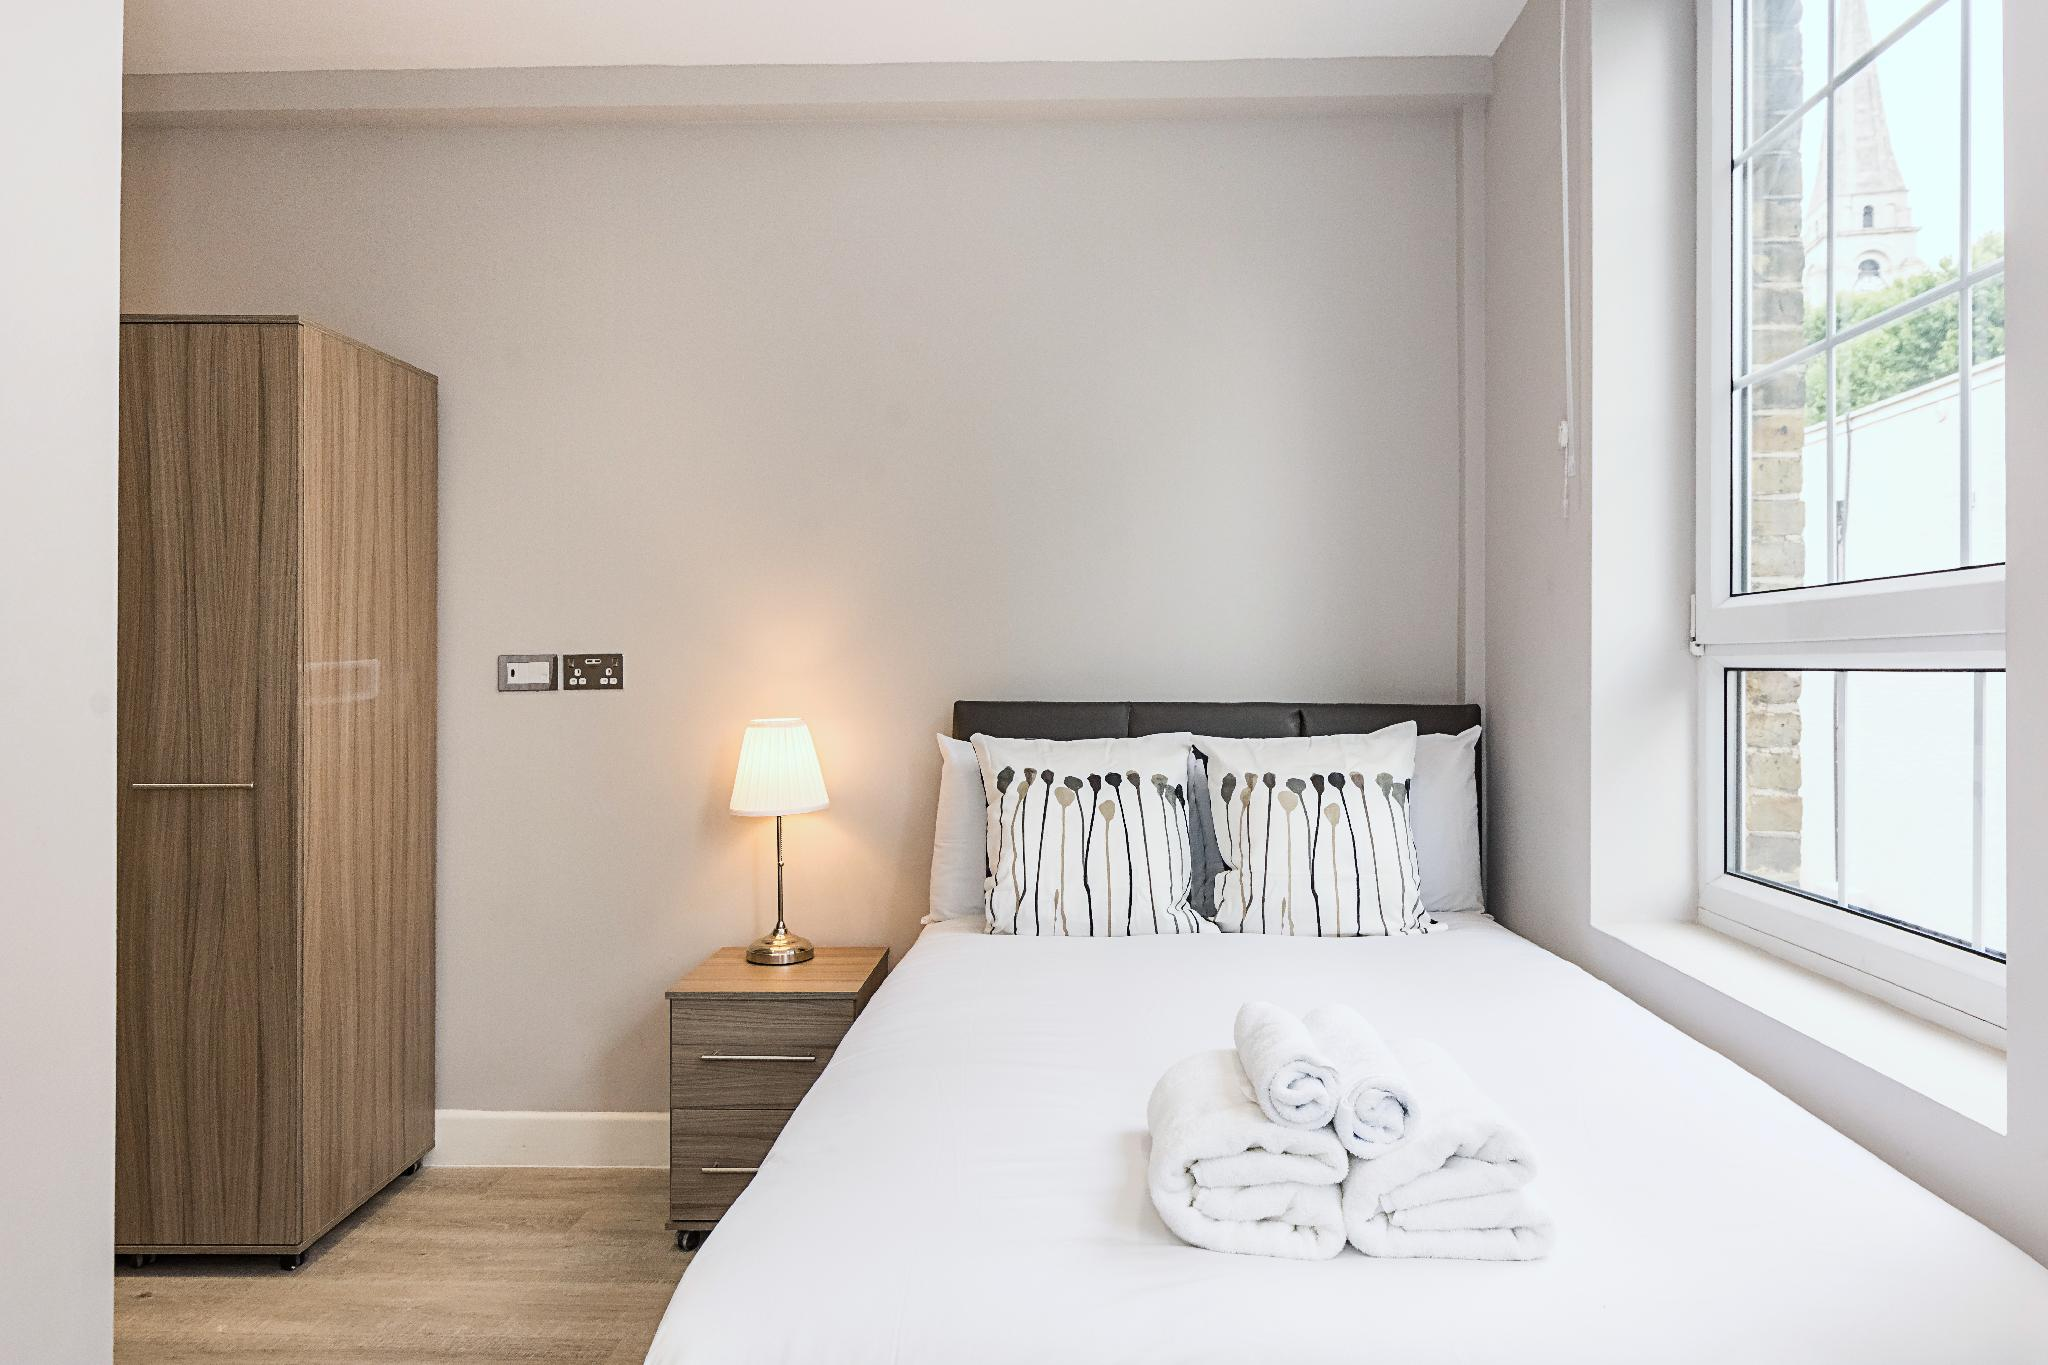 Price CHARMING ROOM IN TOWER HAMLETS